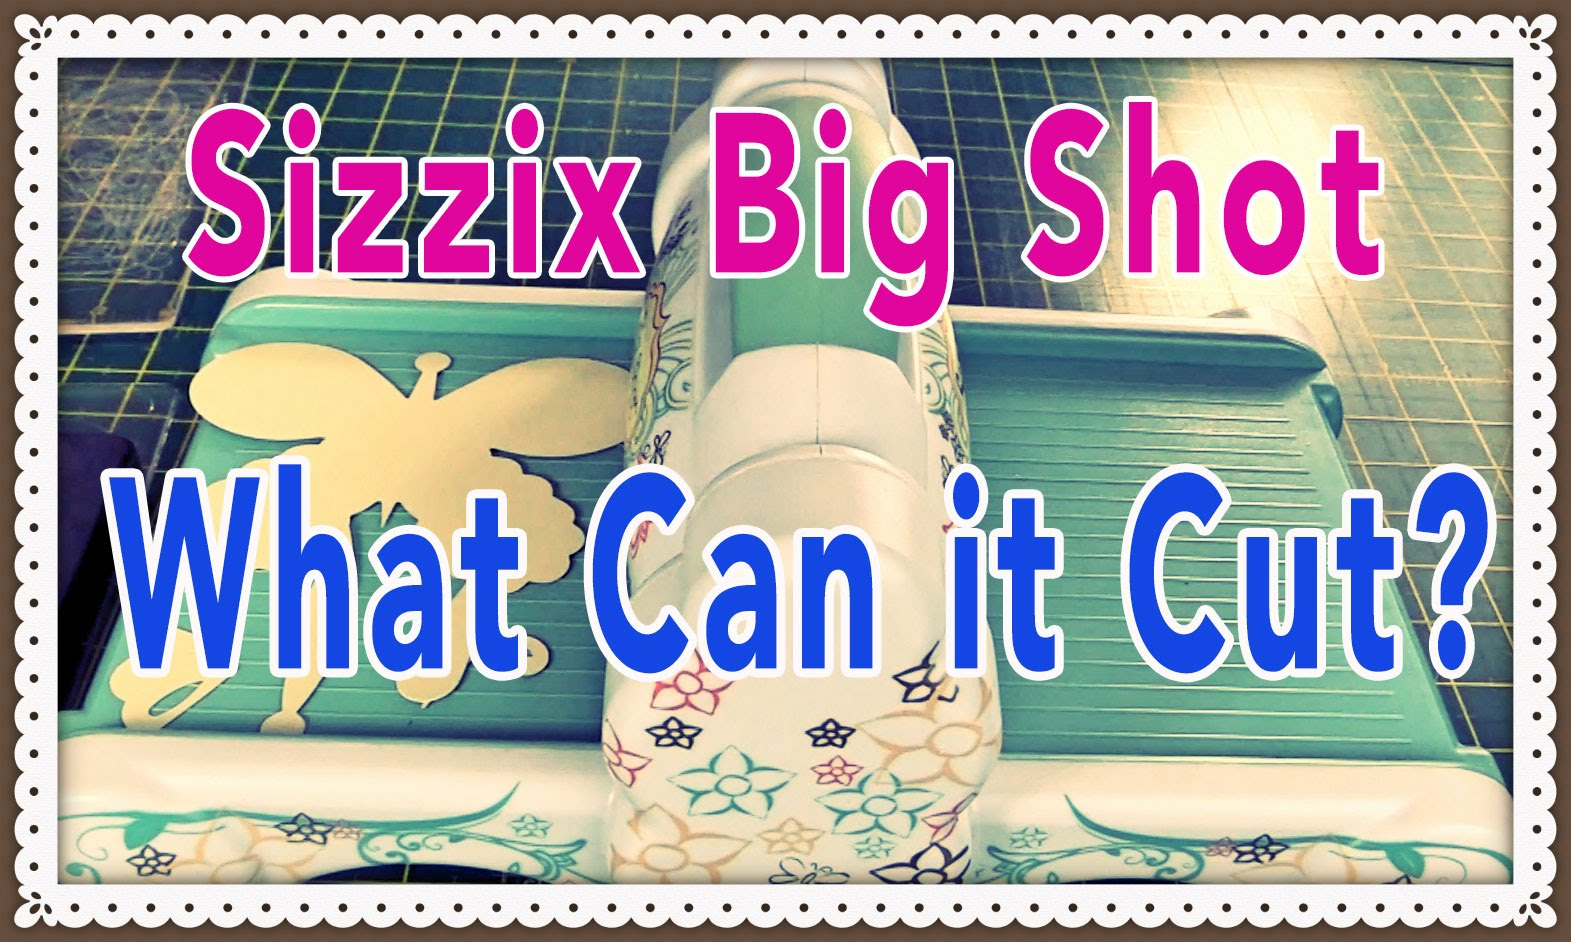 Sizzix Big Shot:  34 Materials It Can Cut